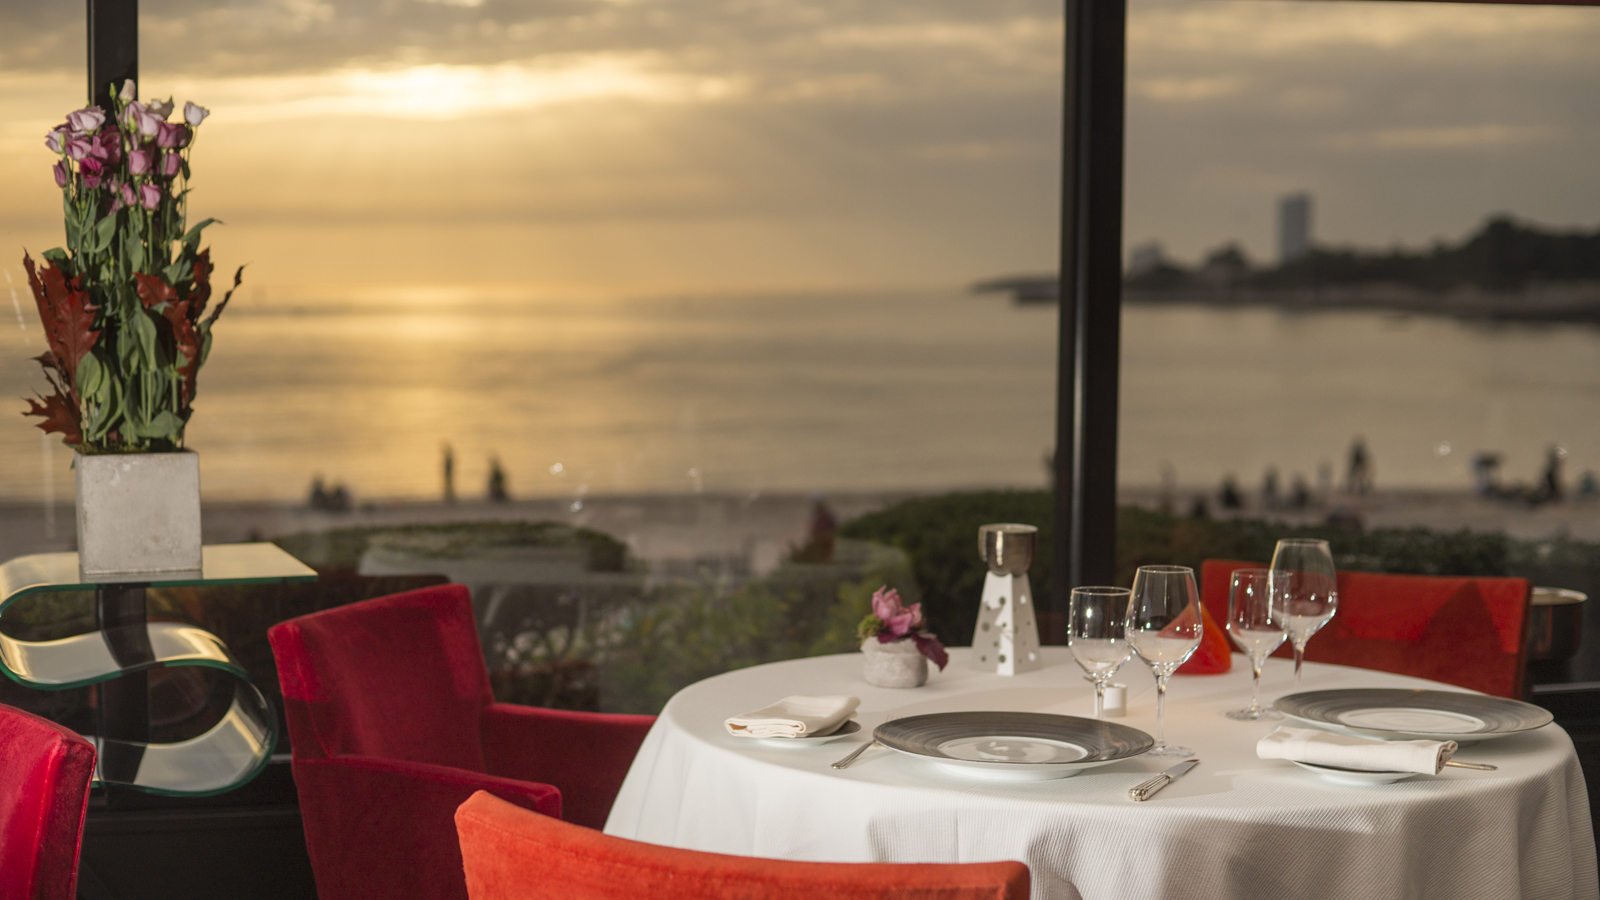 Fine dining restaurant coupons